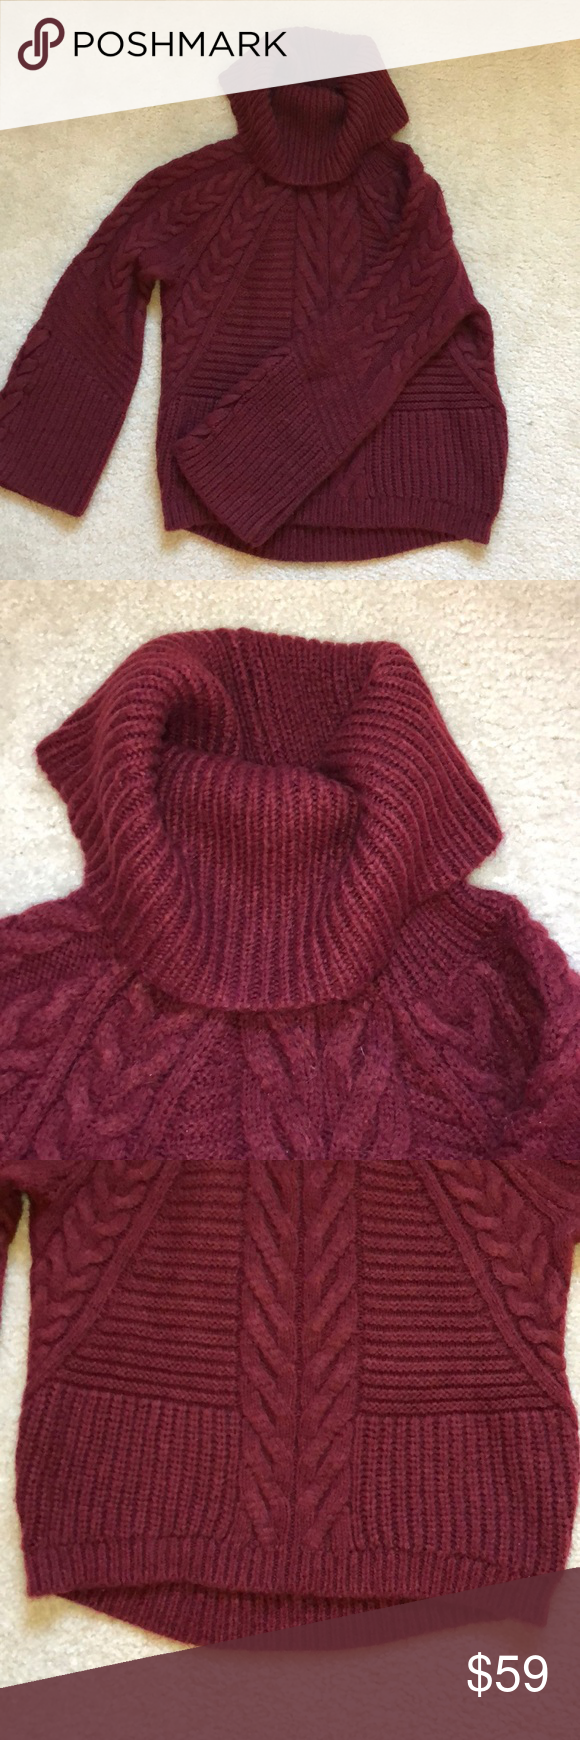 Express Brushed Lace Up Cable Knit Cowl Neck Cowl Neck Knit Sweater Knit Cowl Cable Knit